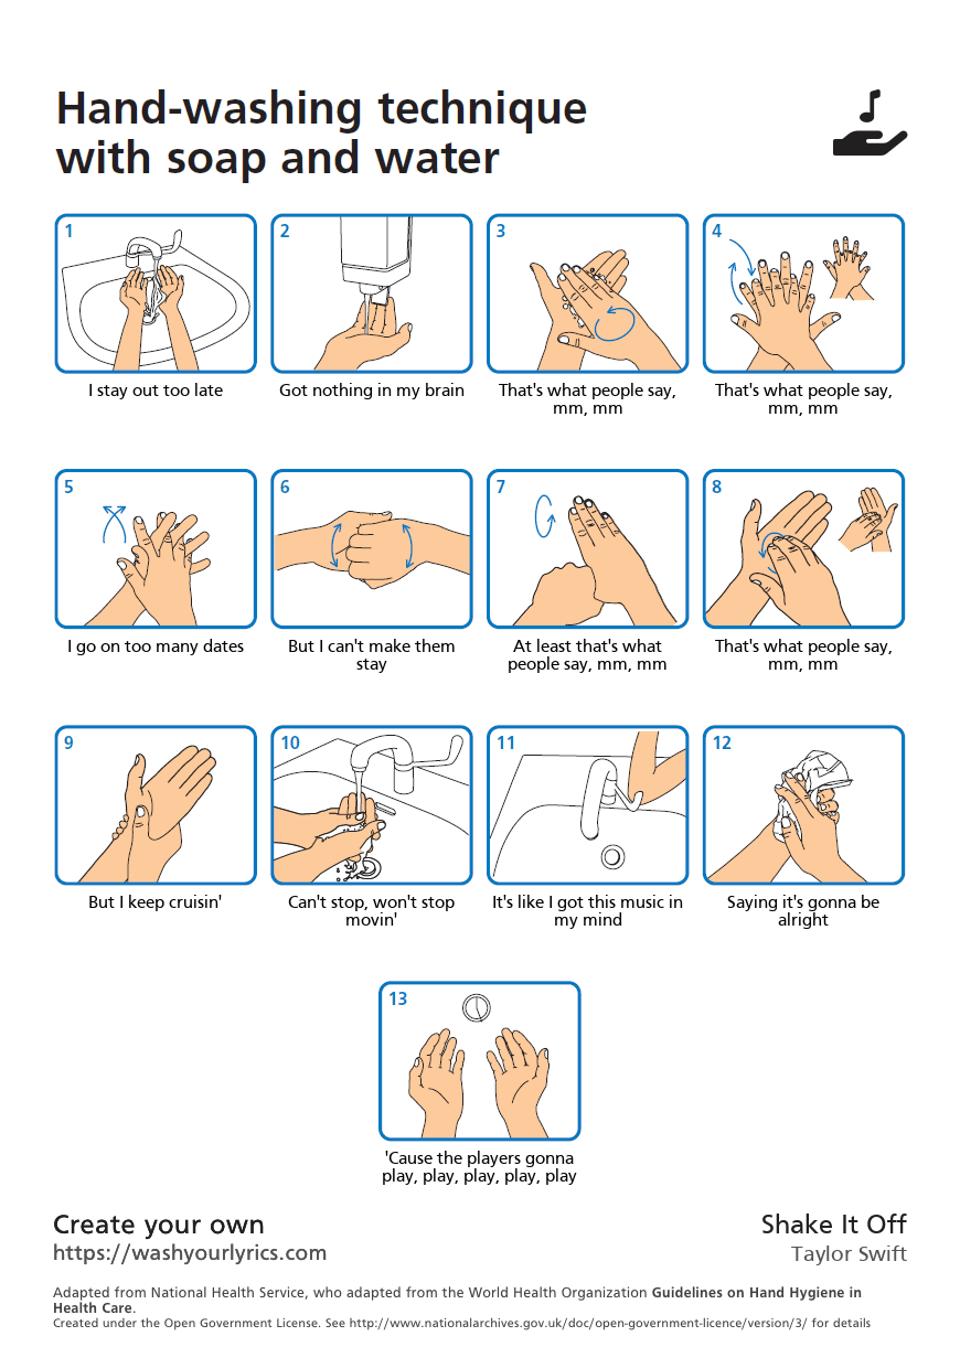 """Hand-washing technique diagram using lyrics from Taylor Swift's """"Take It Off""""."""